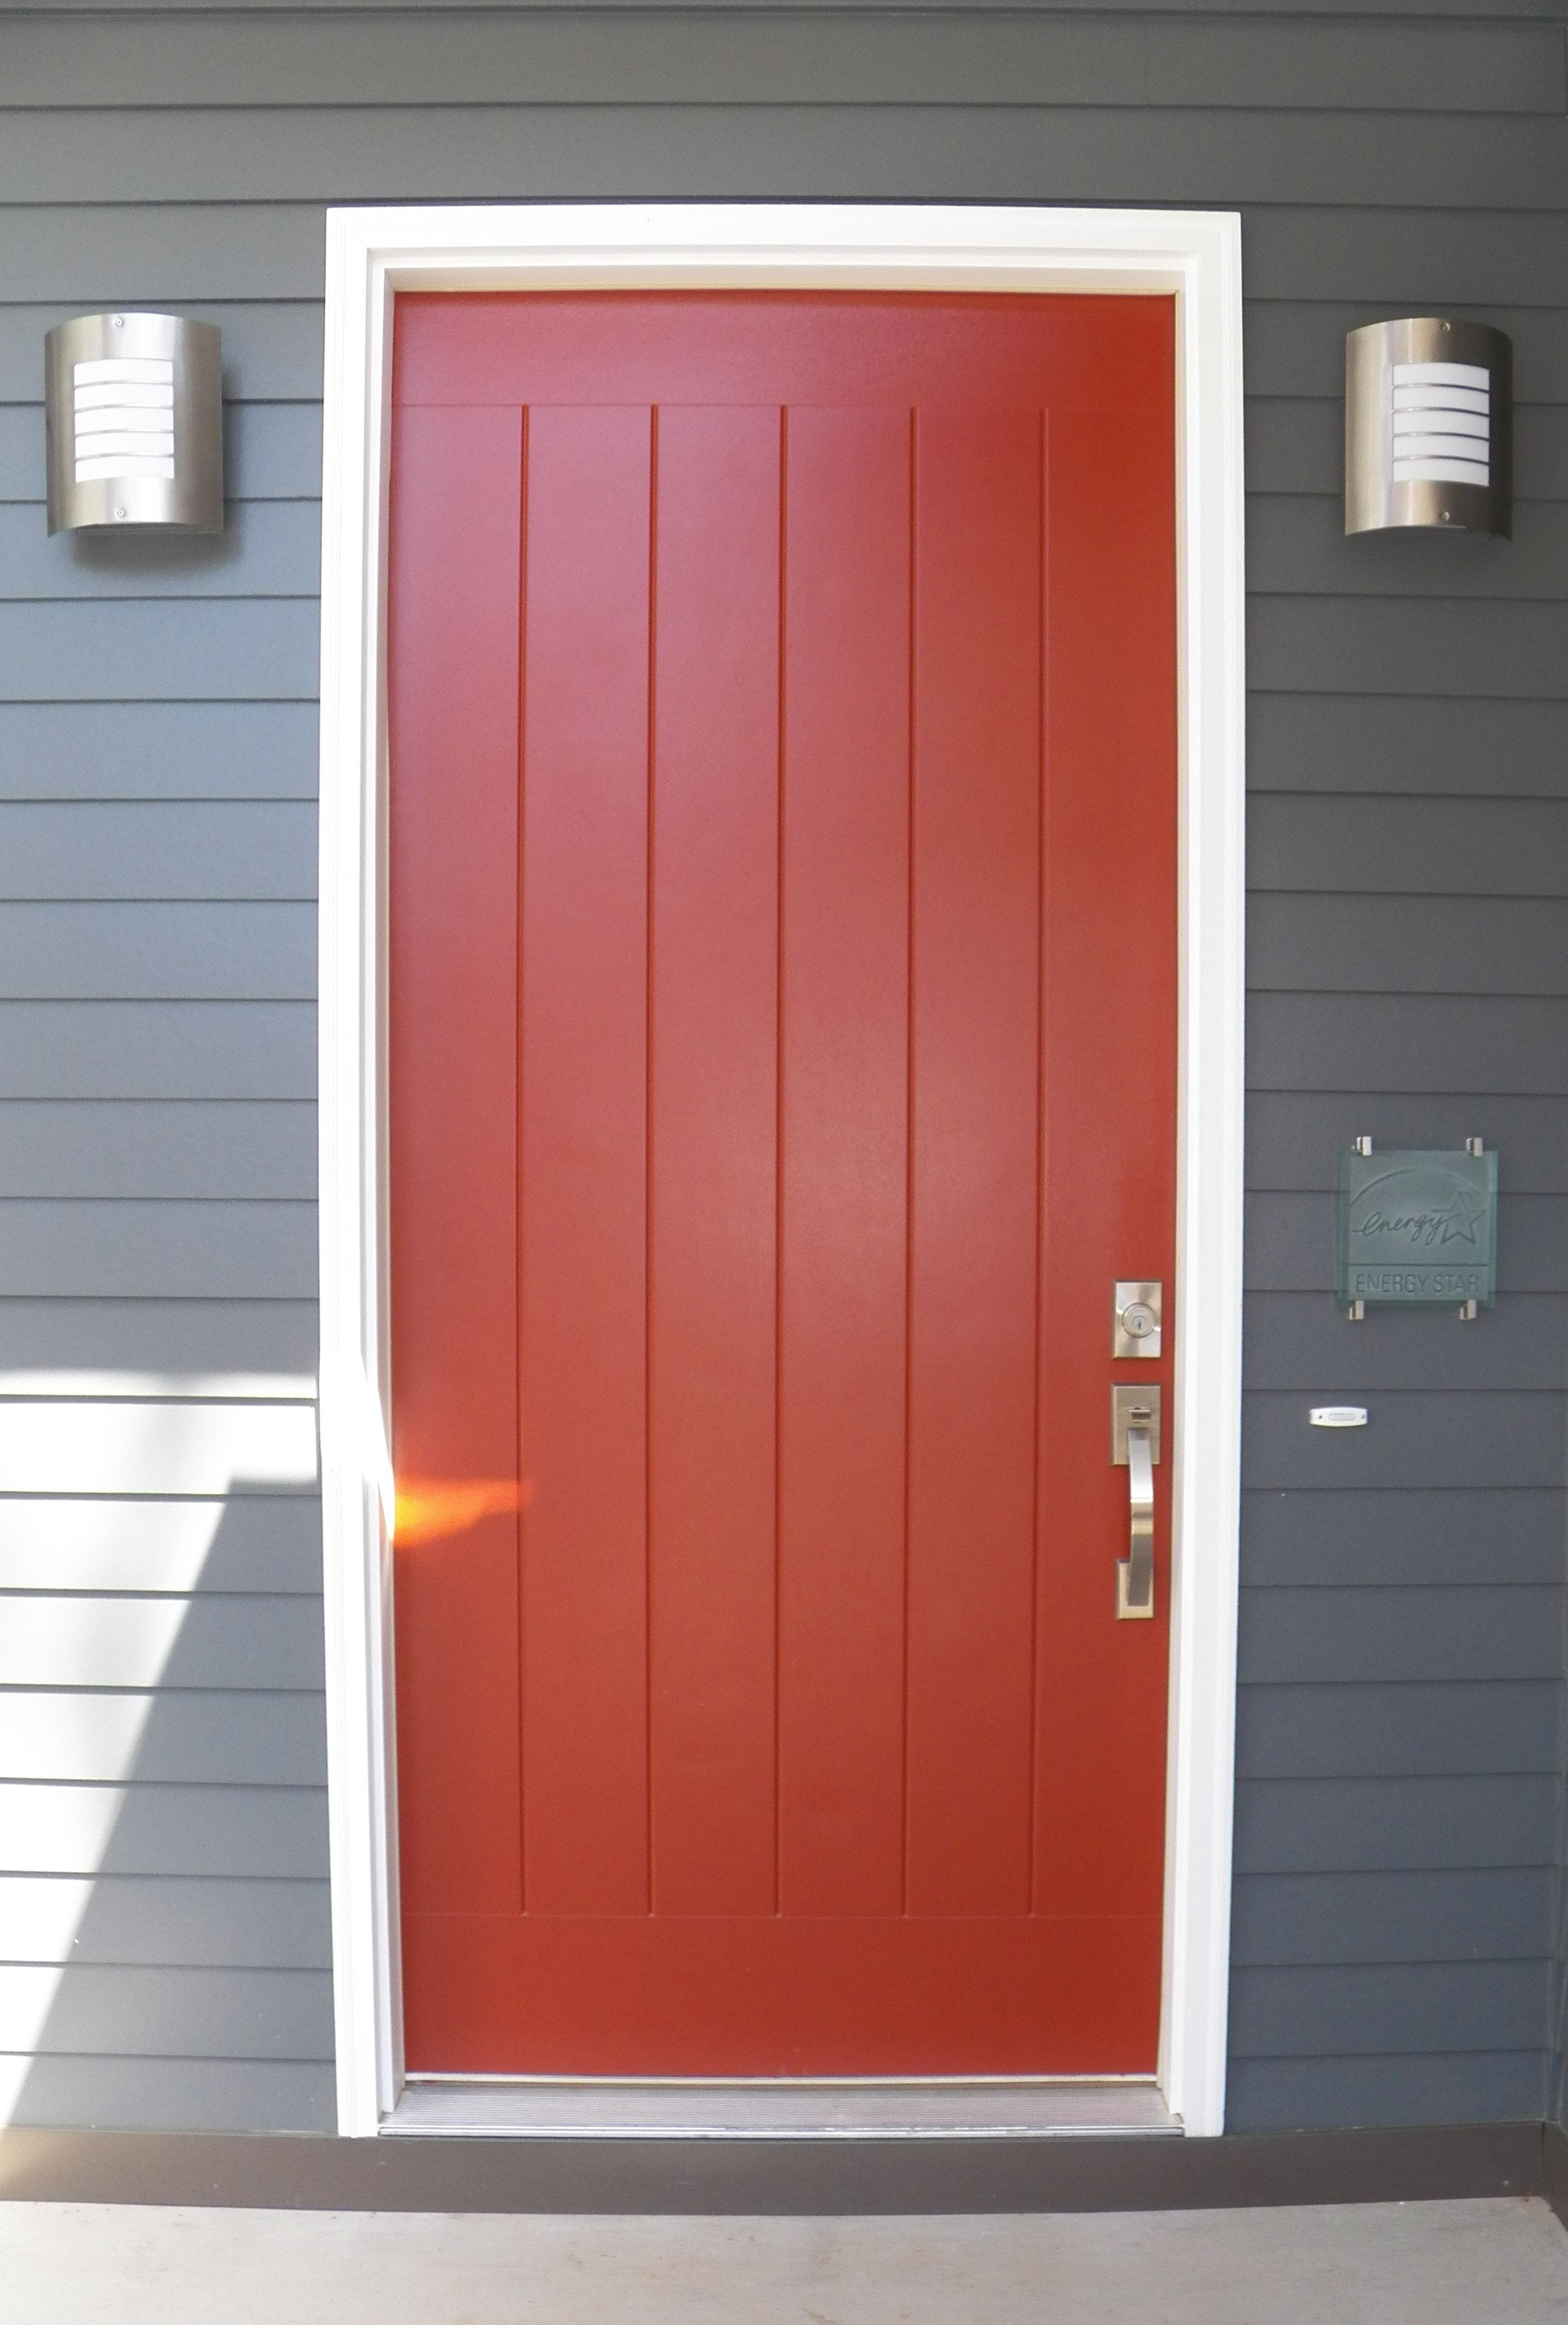 Our red front door. Energy Star etched glass plaque on the right.